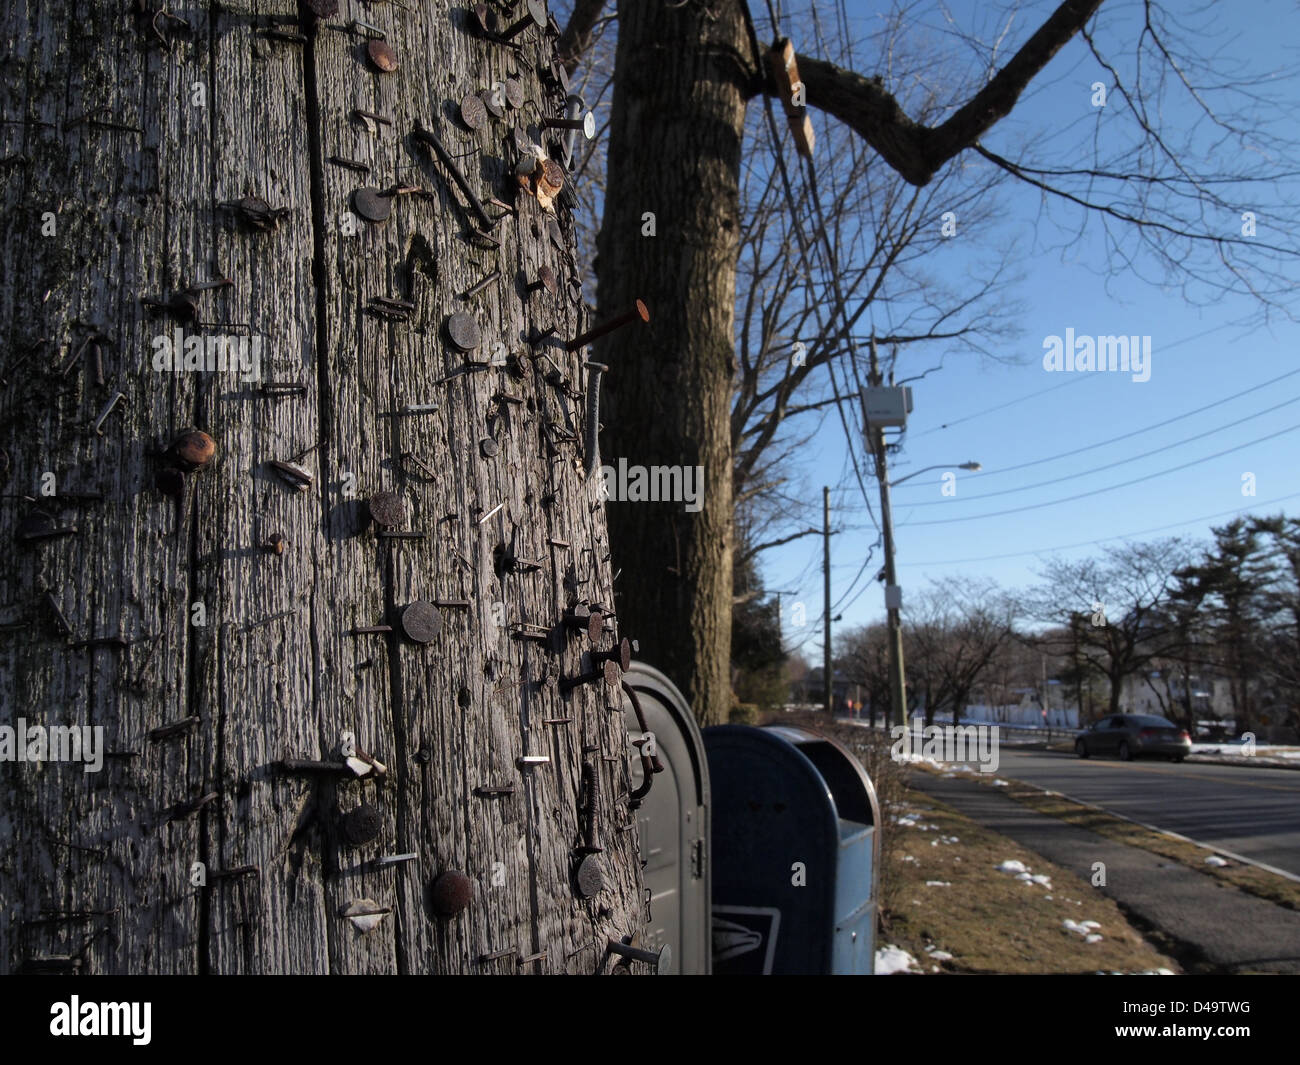 A multitude of nails and staples from years of posting cover a utility pole, New York, USA, March 9, 2013, © - Stock Image